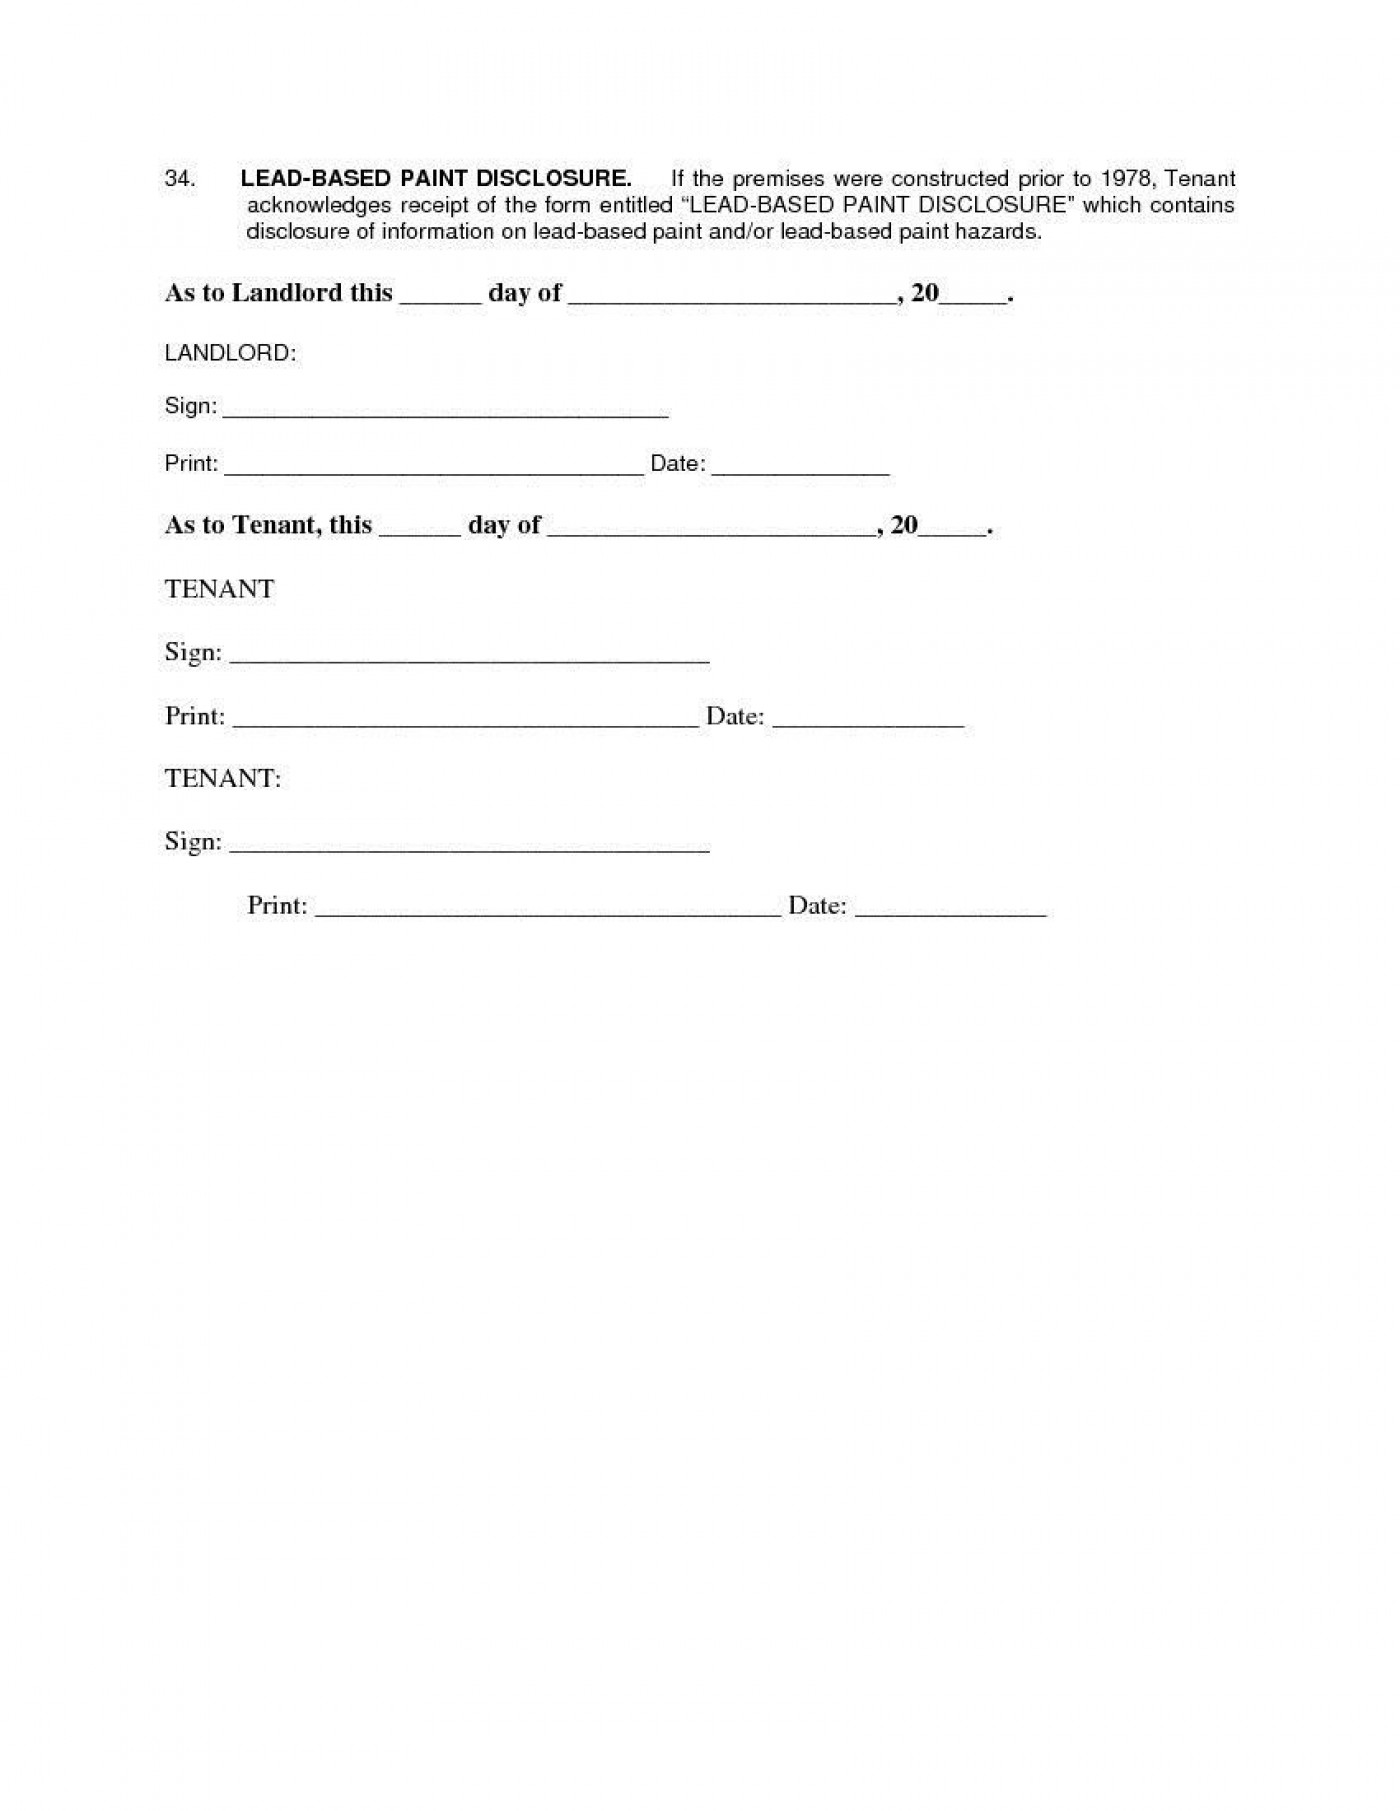 007 Remarkable Apartment Lease Agreement Form Texa High Def 1400